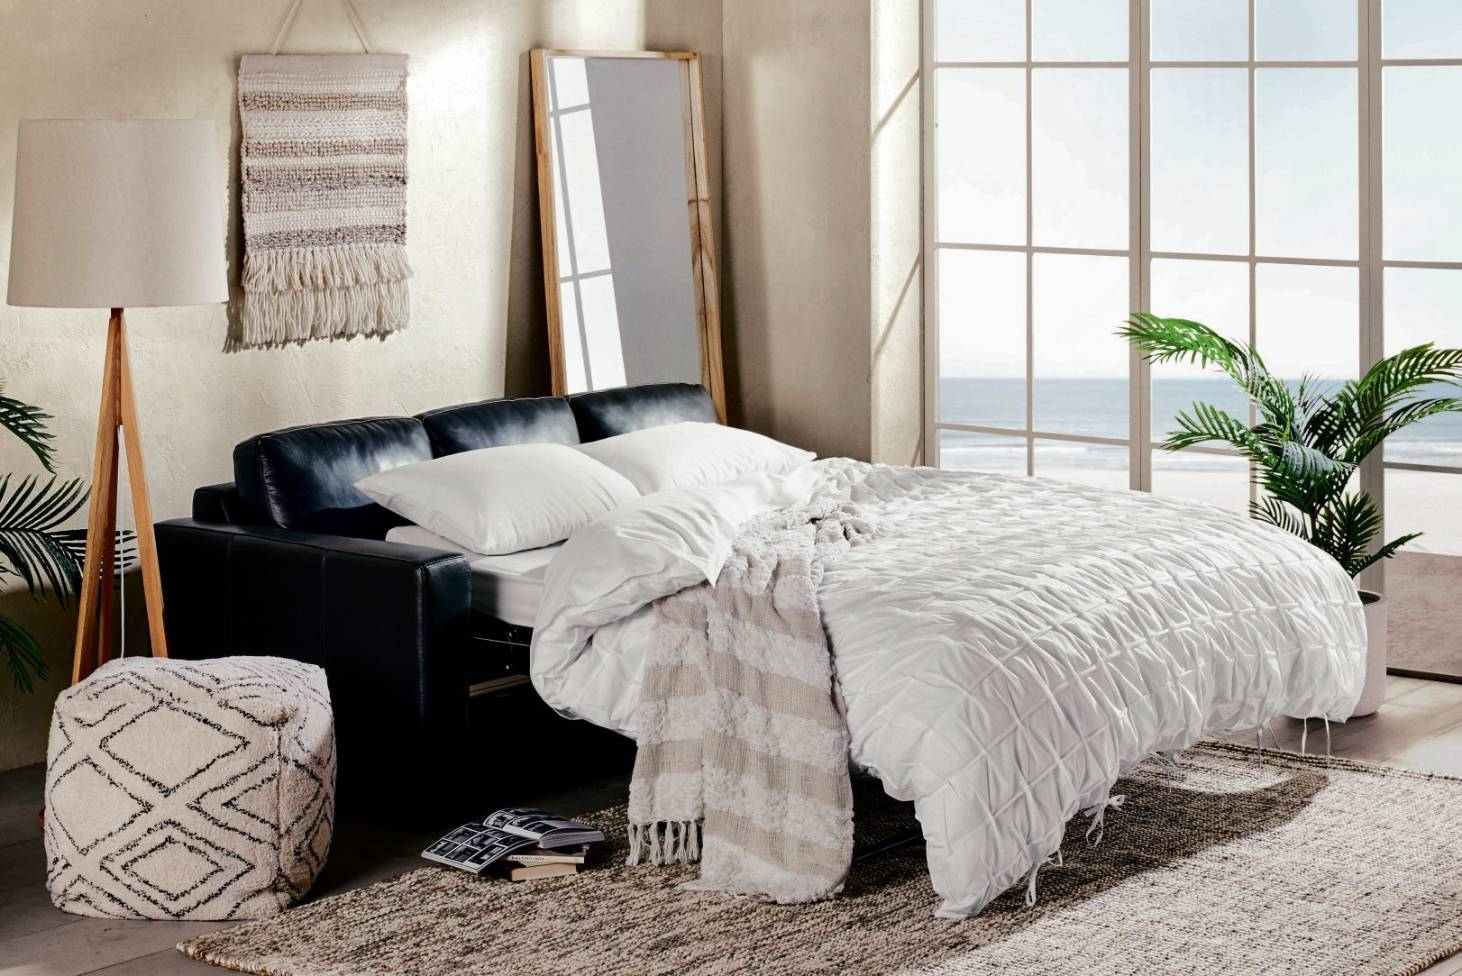 Sofa Beds Online Nz Sofa Beds What To Do When You Don T Have A Guest Room Stuff Co Nz